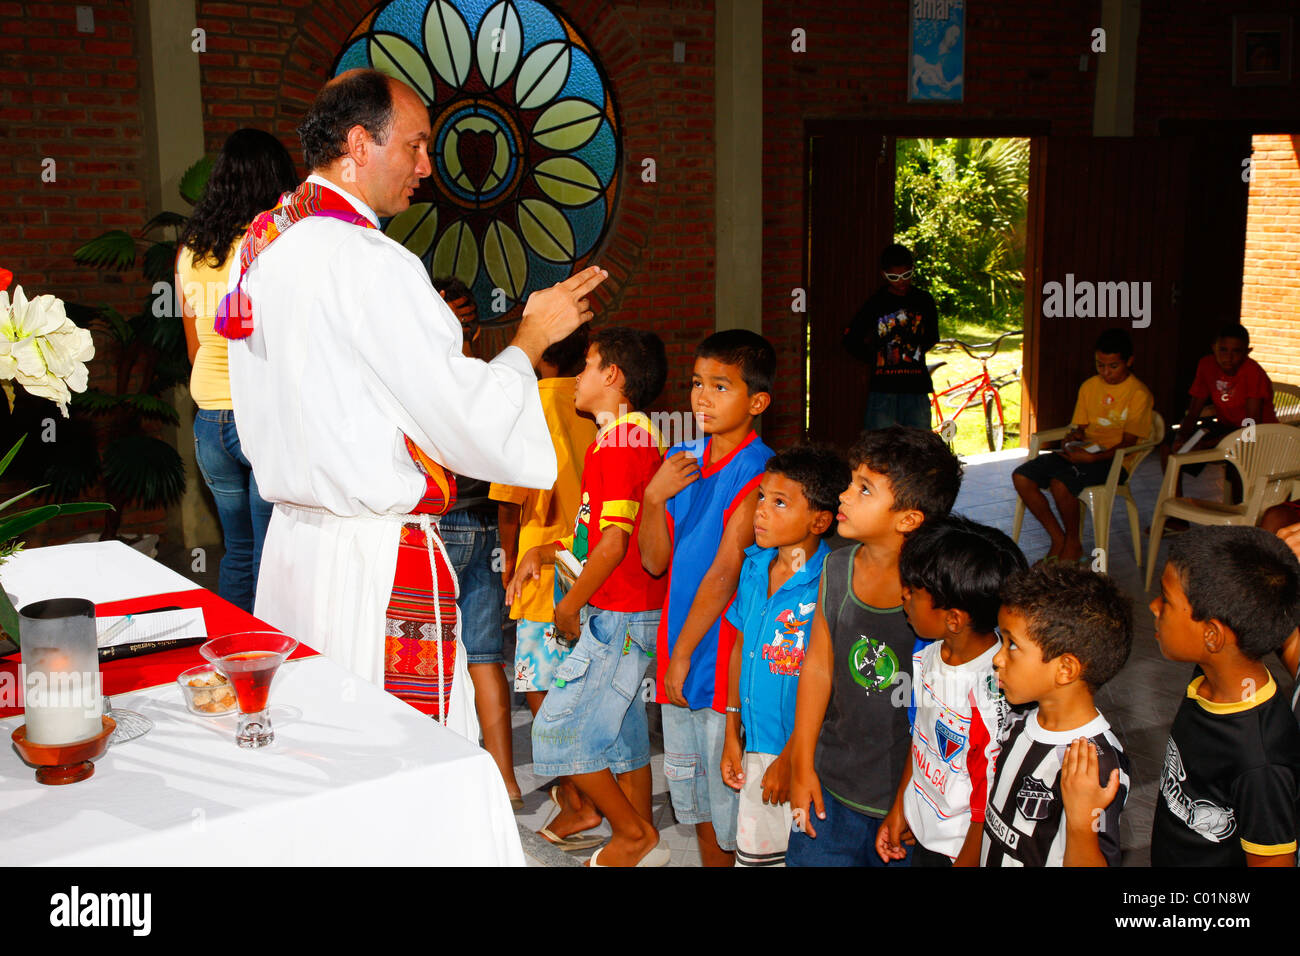 Priest blessing children, Sunday school, Fortaleza, Ceará, Brazil, South America - Stock Image